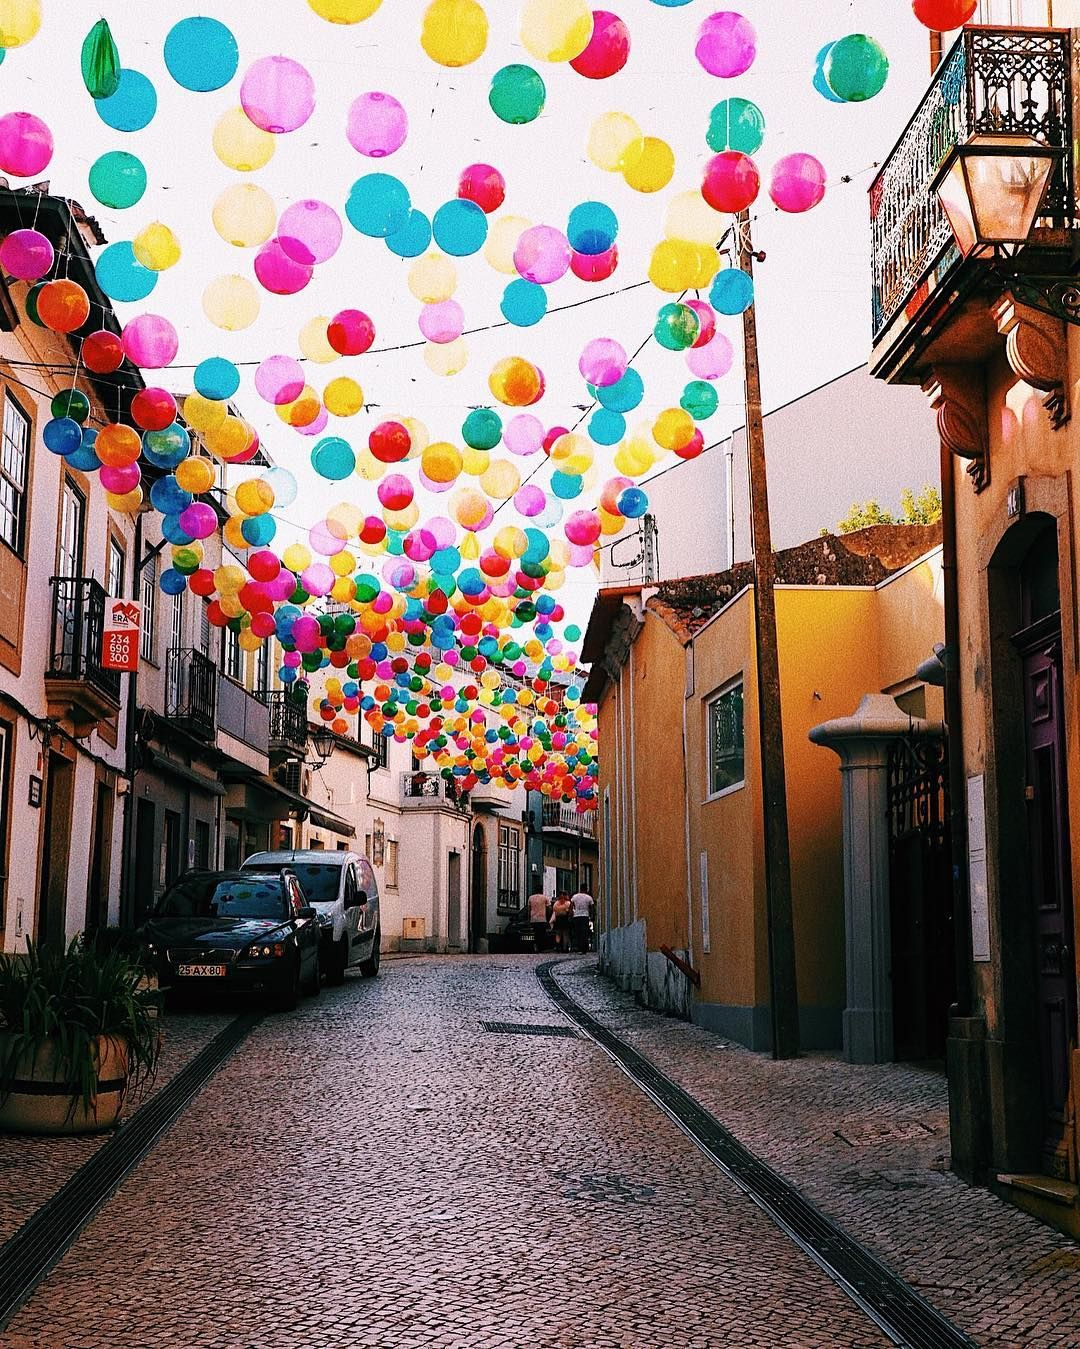 Color & imagination take over the city of Águeda in Portugal wallpaper